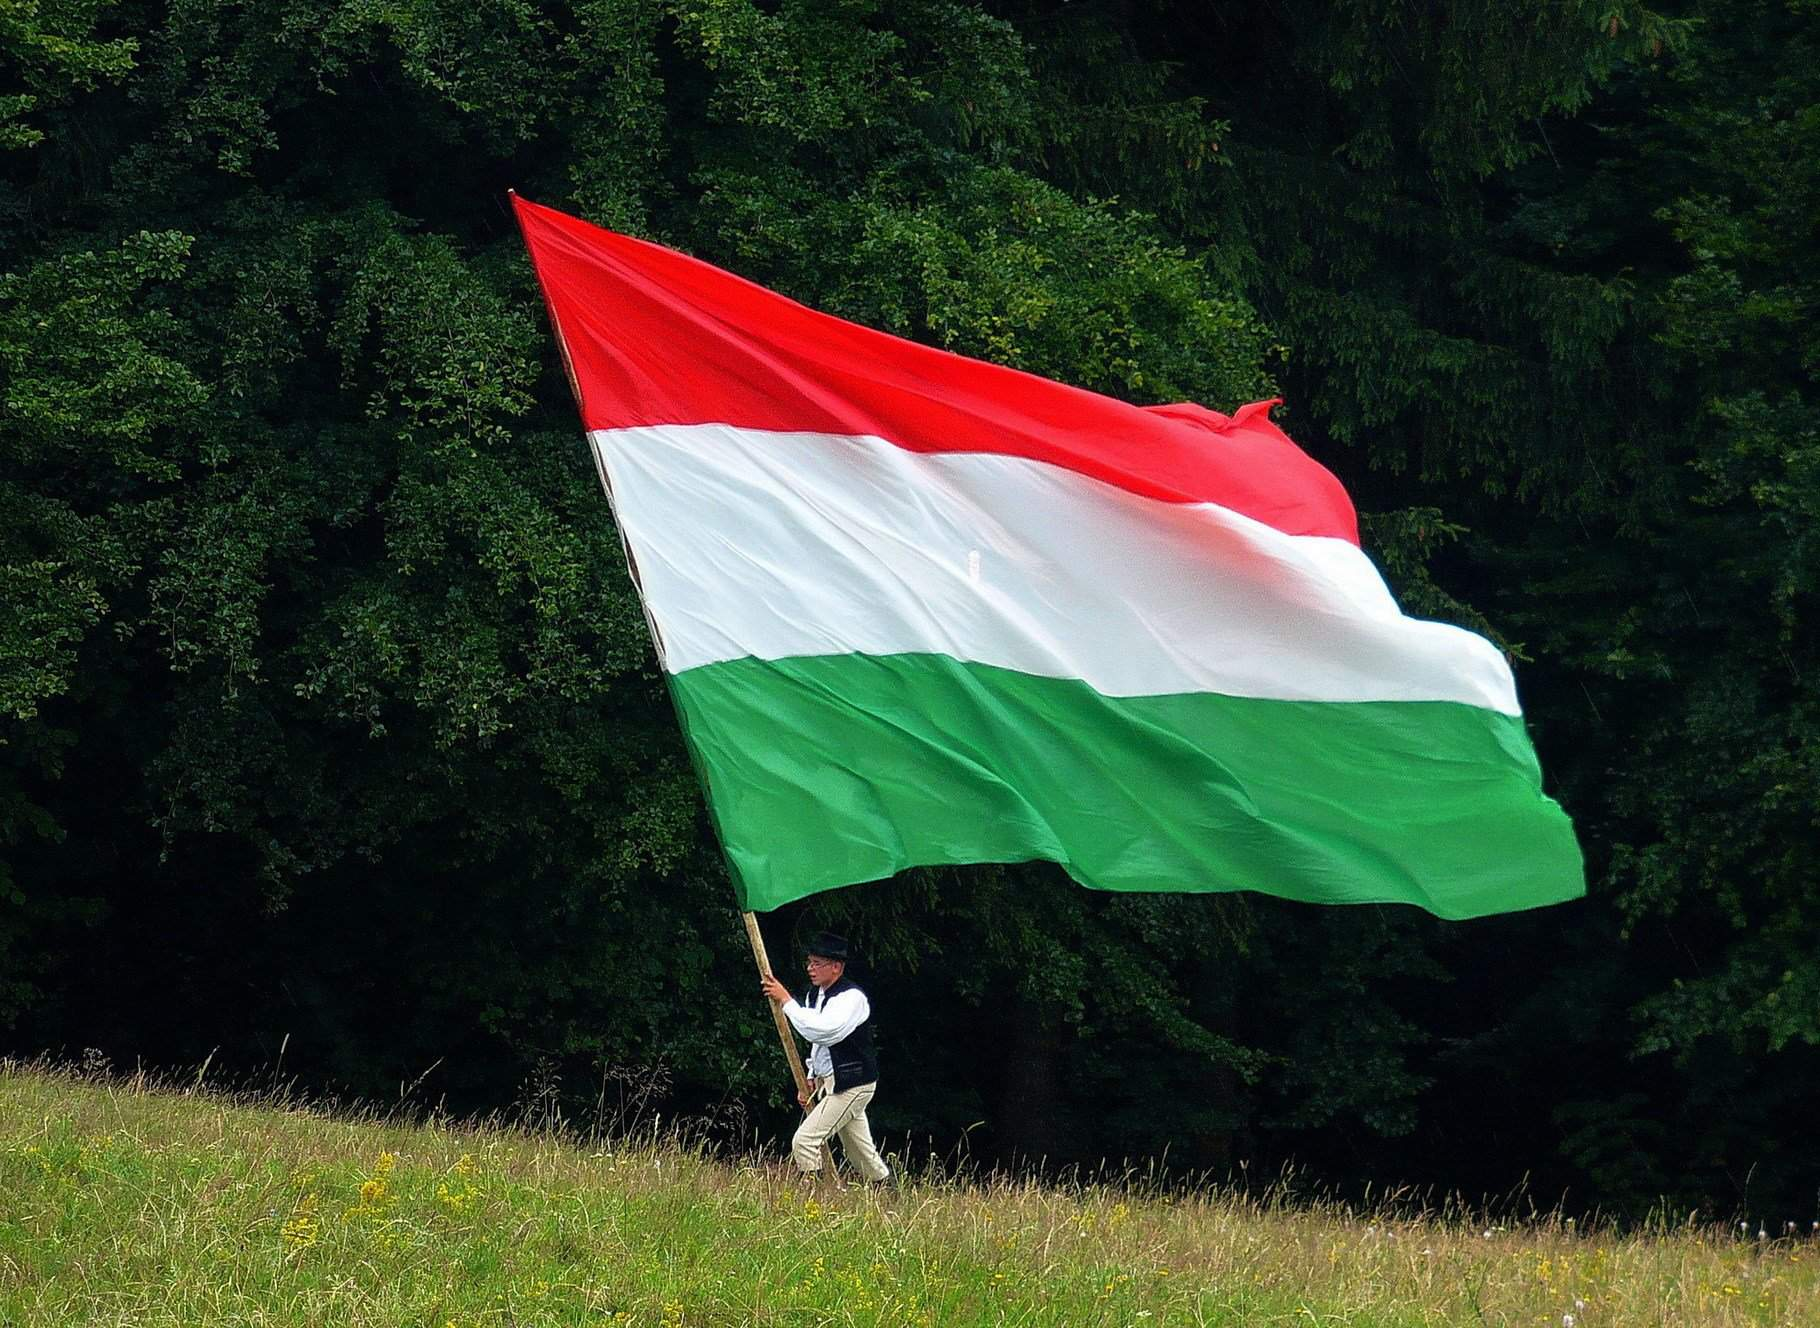 Hungary, 96 years after the Treaty of Trianon